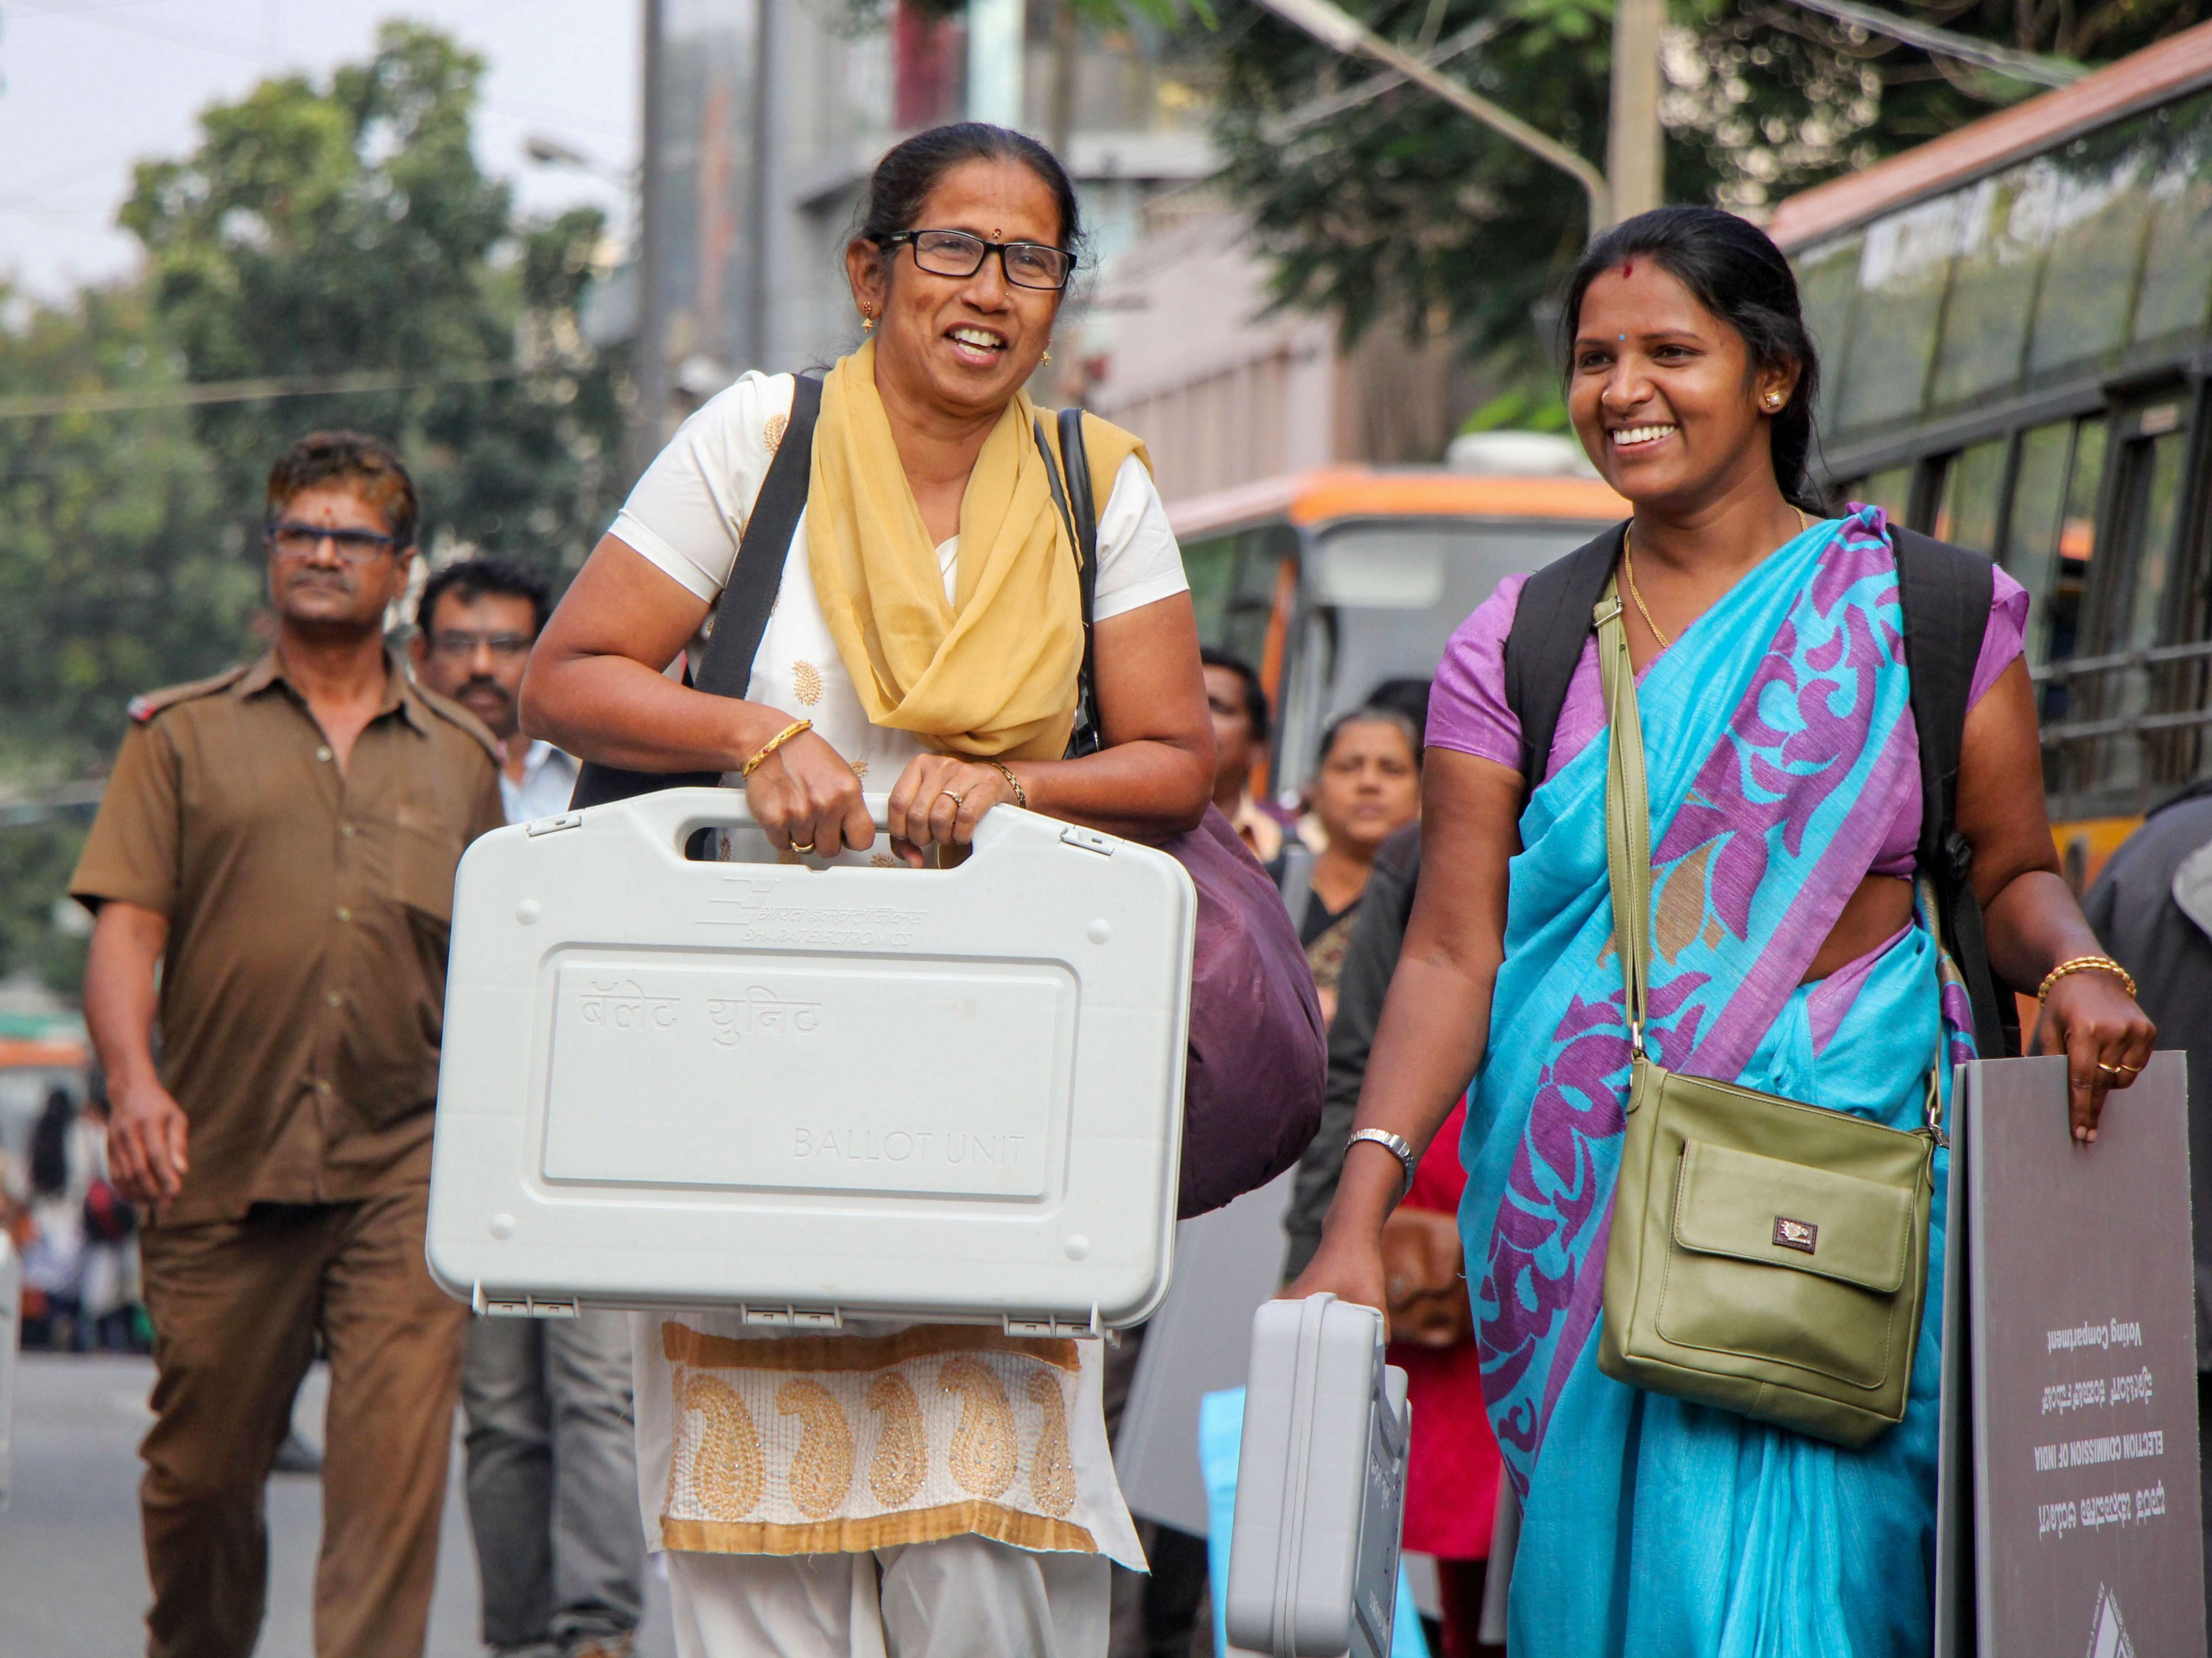 In this file photo taken on the eve of bypolls in Karnataka on Wednesday, Decemeber 4, 2019, polling officials can be seen collecting EVMs and others polling materials.